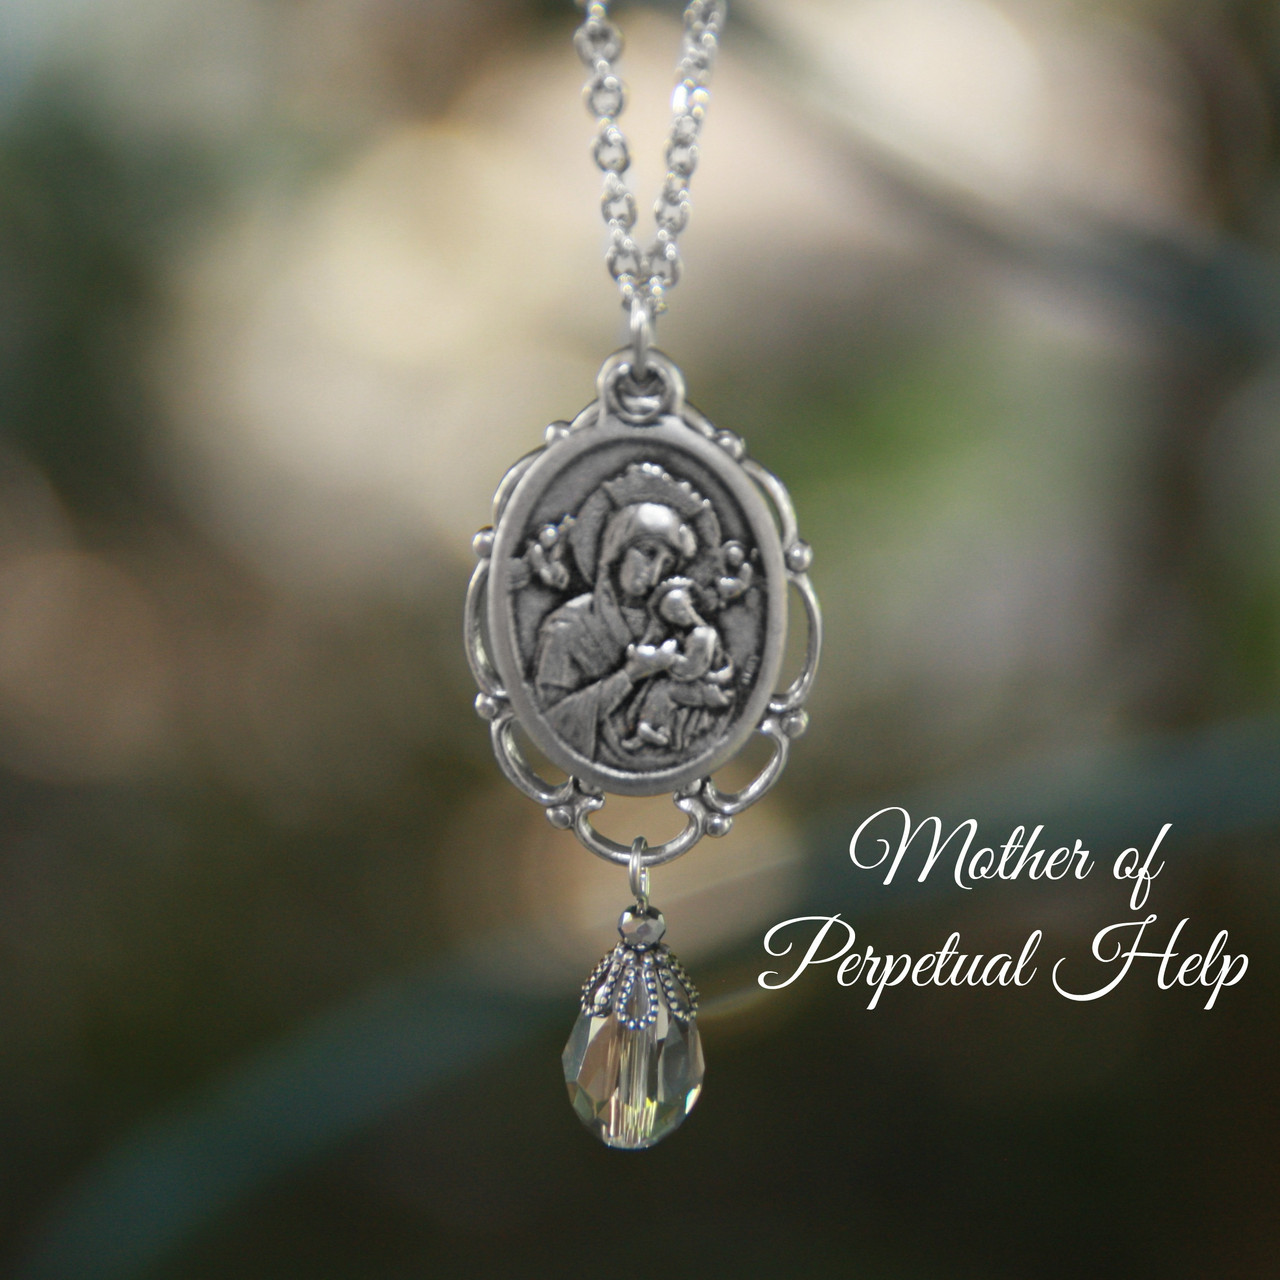 IN-625  Mother of Perpetual Help Necklace